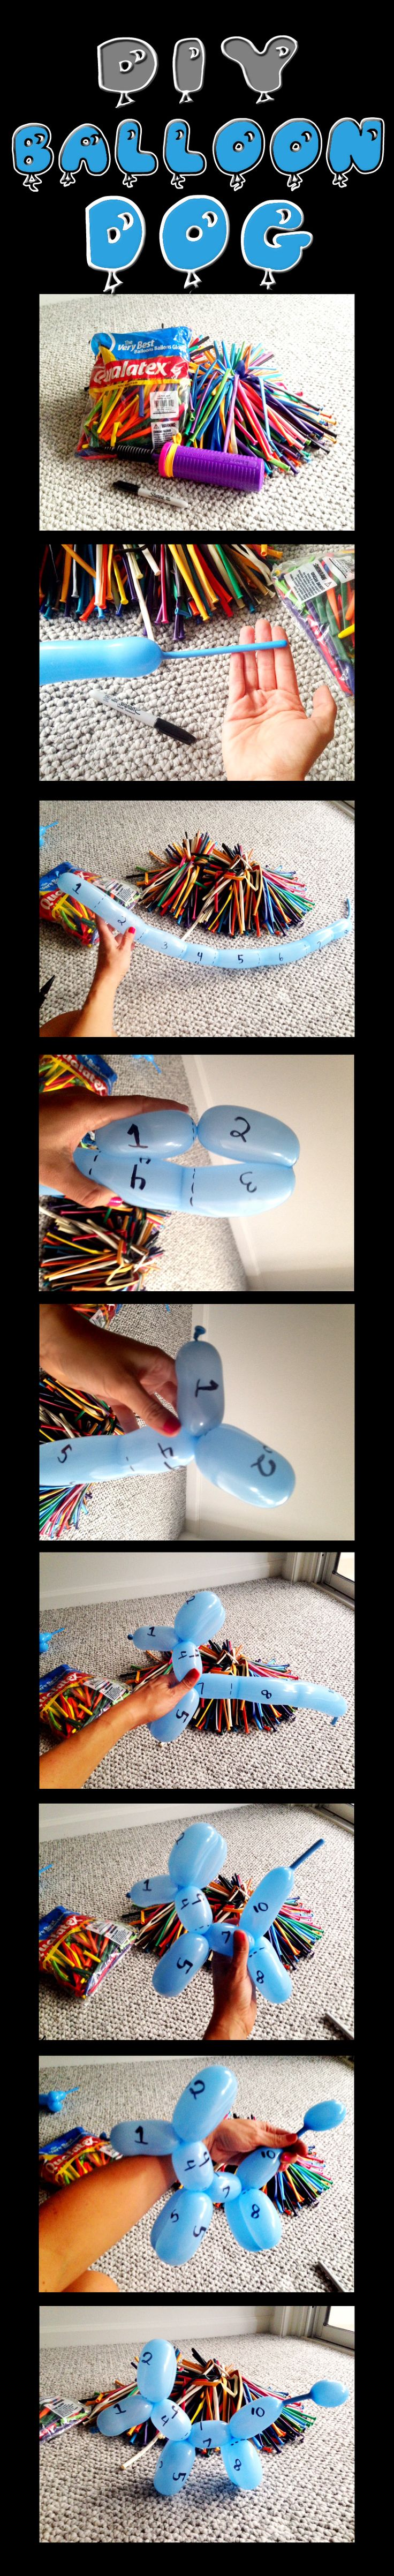 How to make a balloon animal dog! Follow my simple step by step DIY tutorial and create your own squeaky puppy pal.